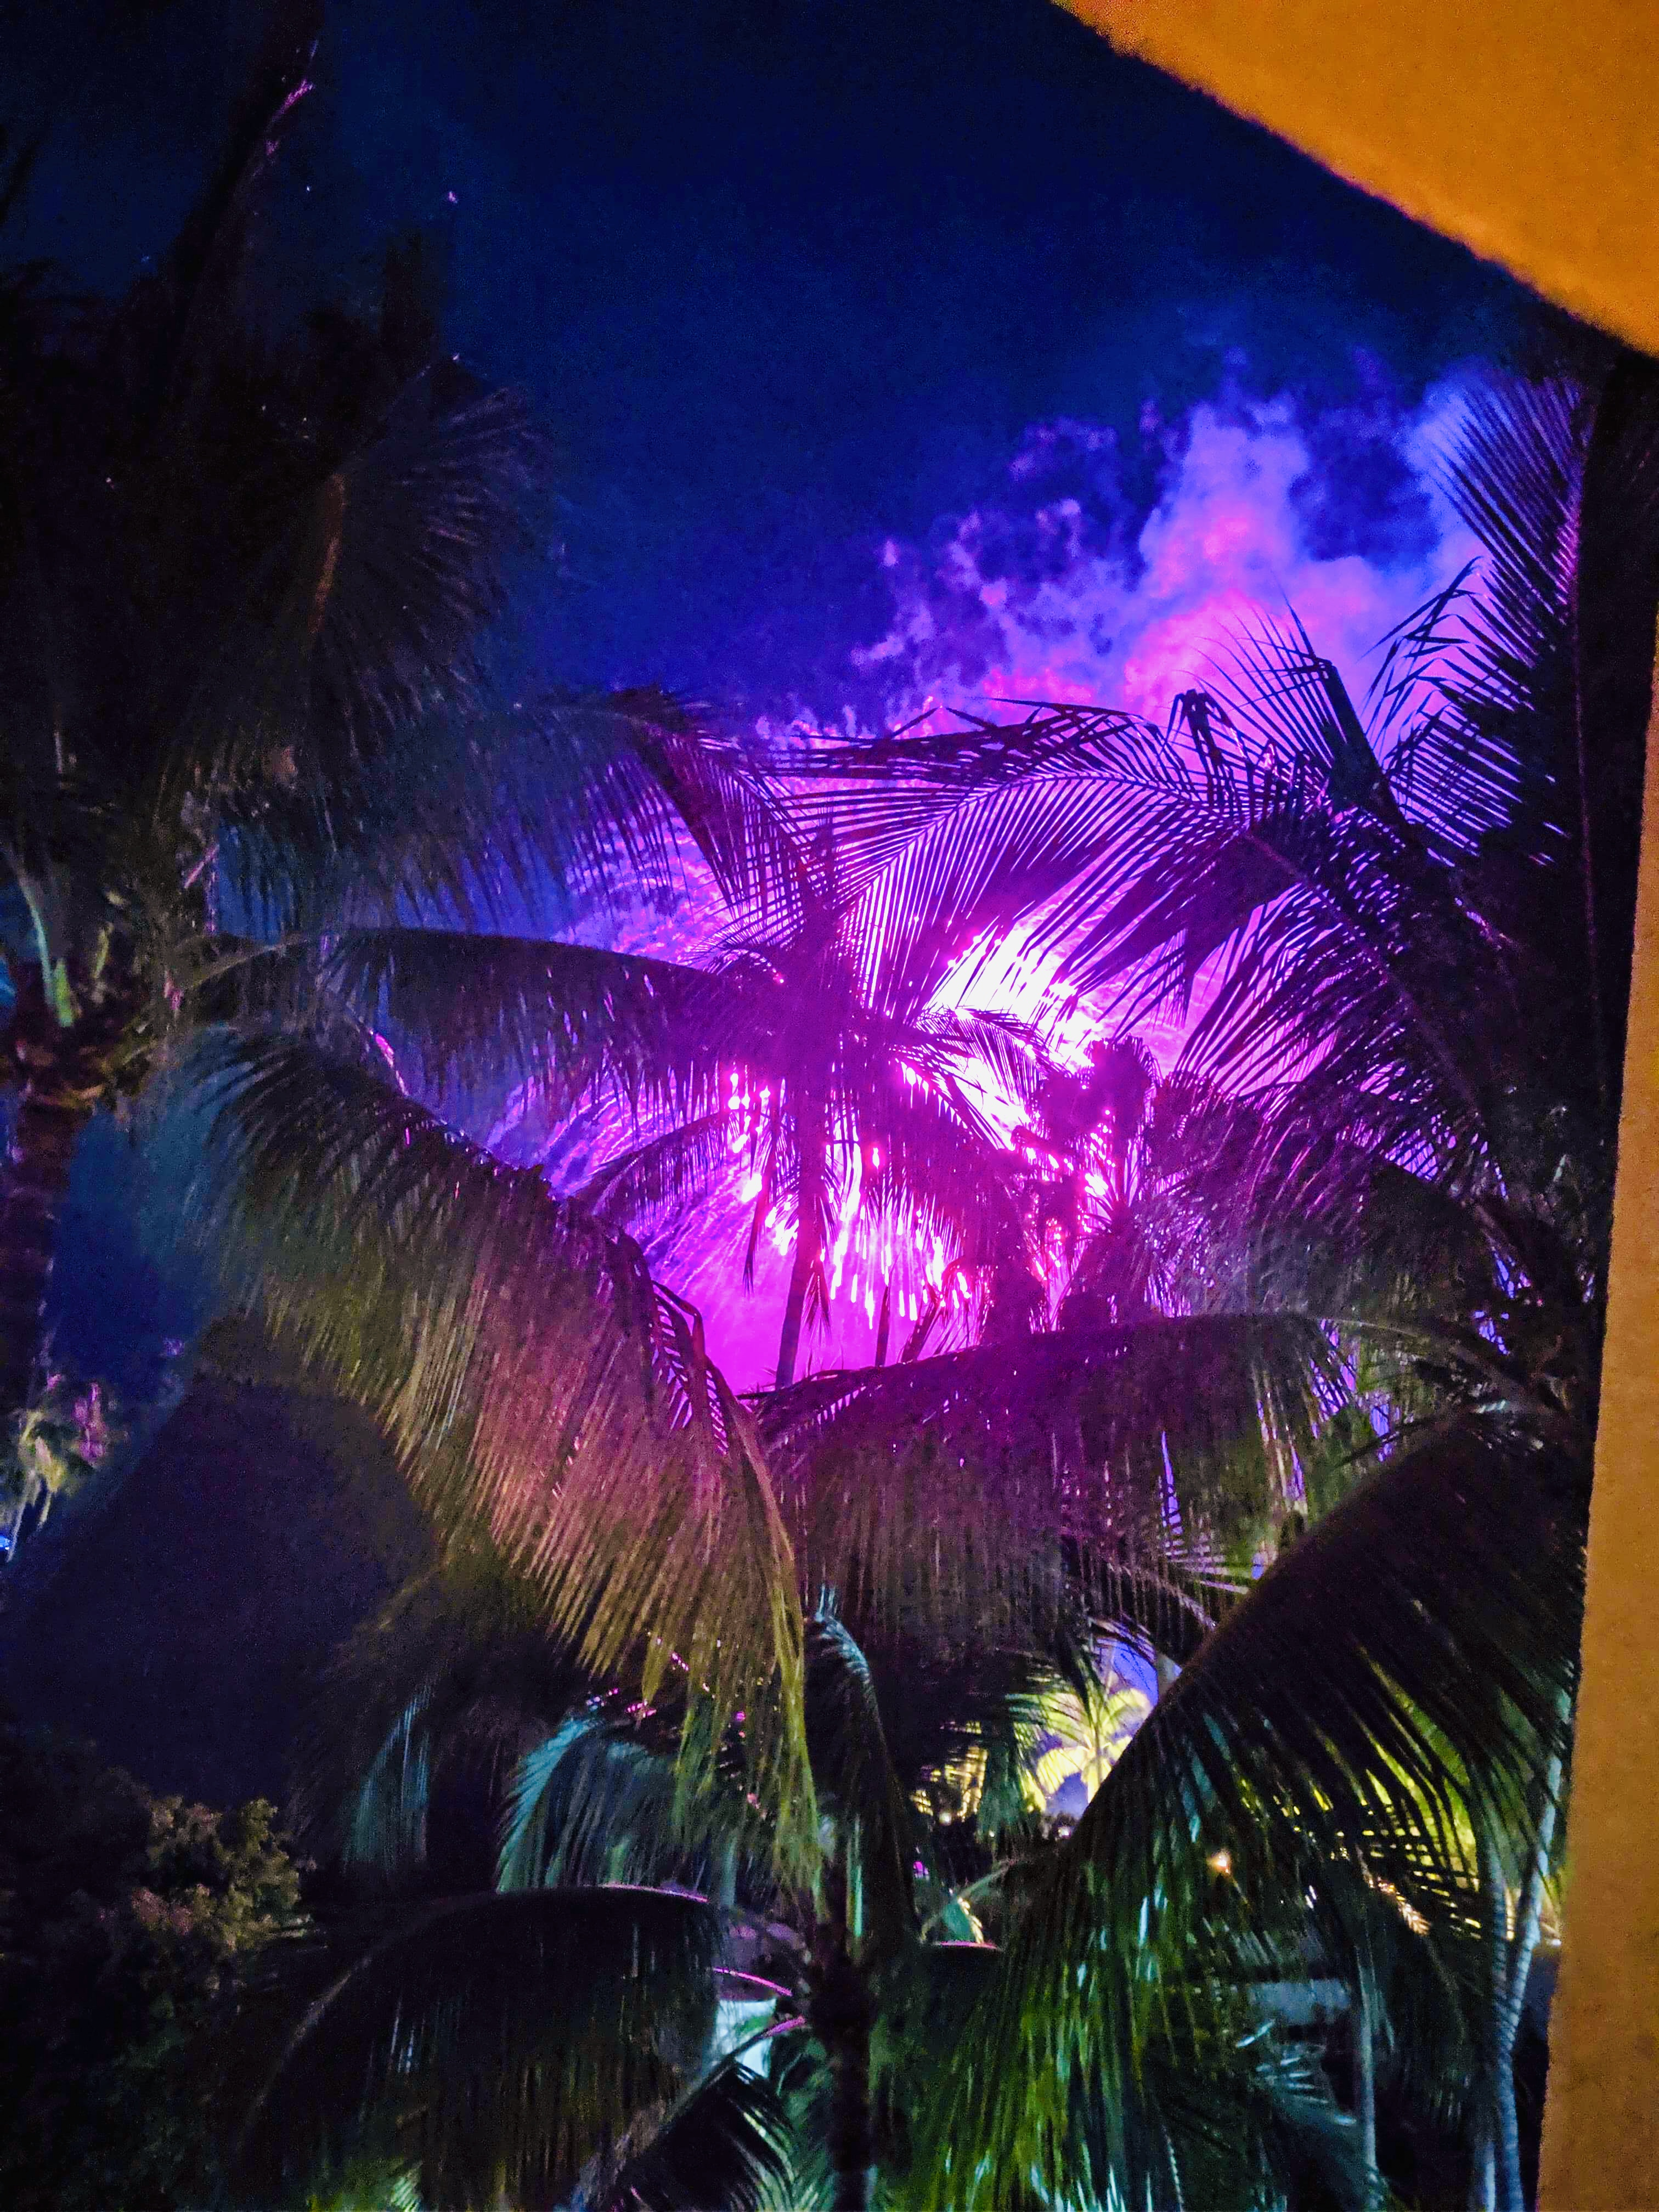 Fireworks outside our hotel room at the Westin, and coconut trees